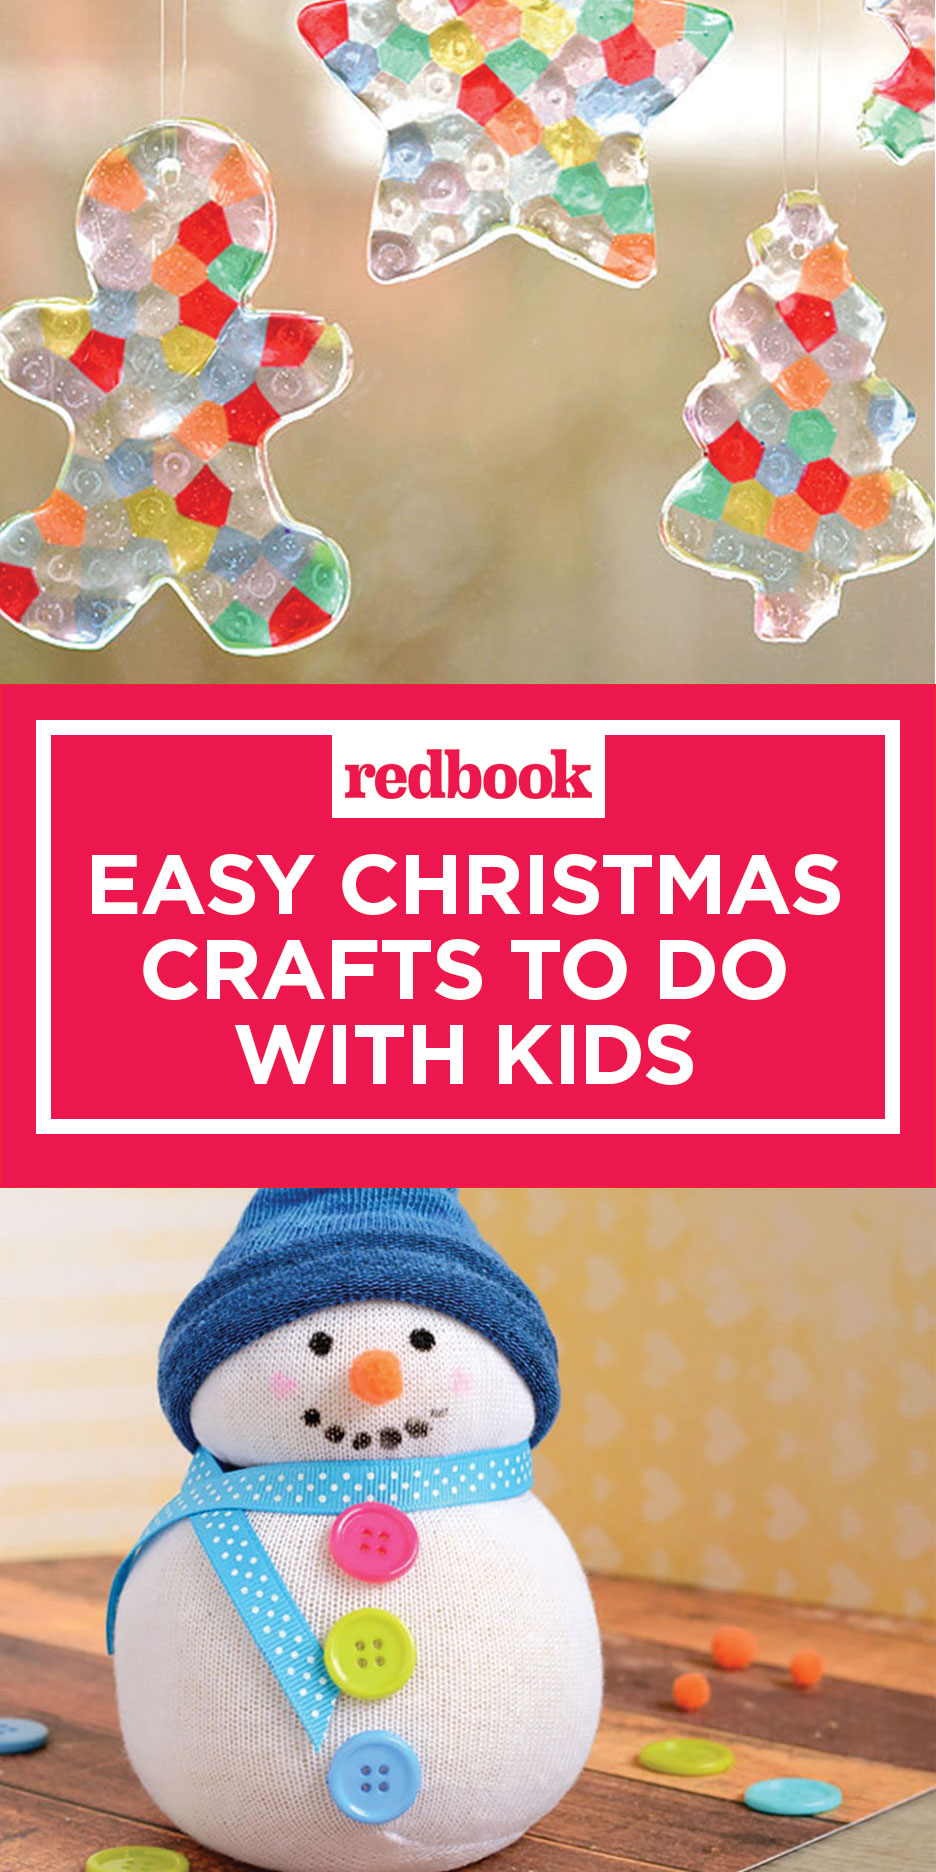 Easy Christmas Crafts for Kids - Holiday Arts and Crafts